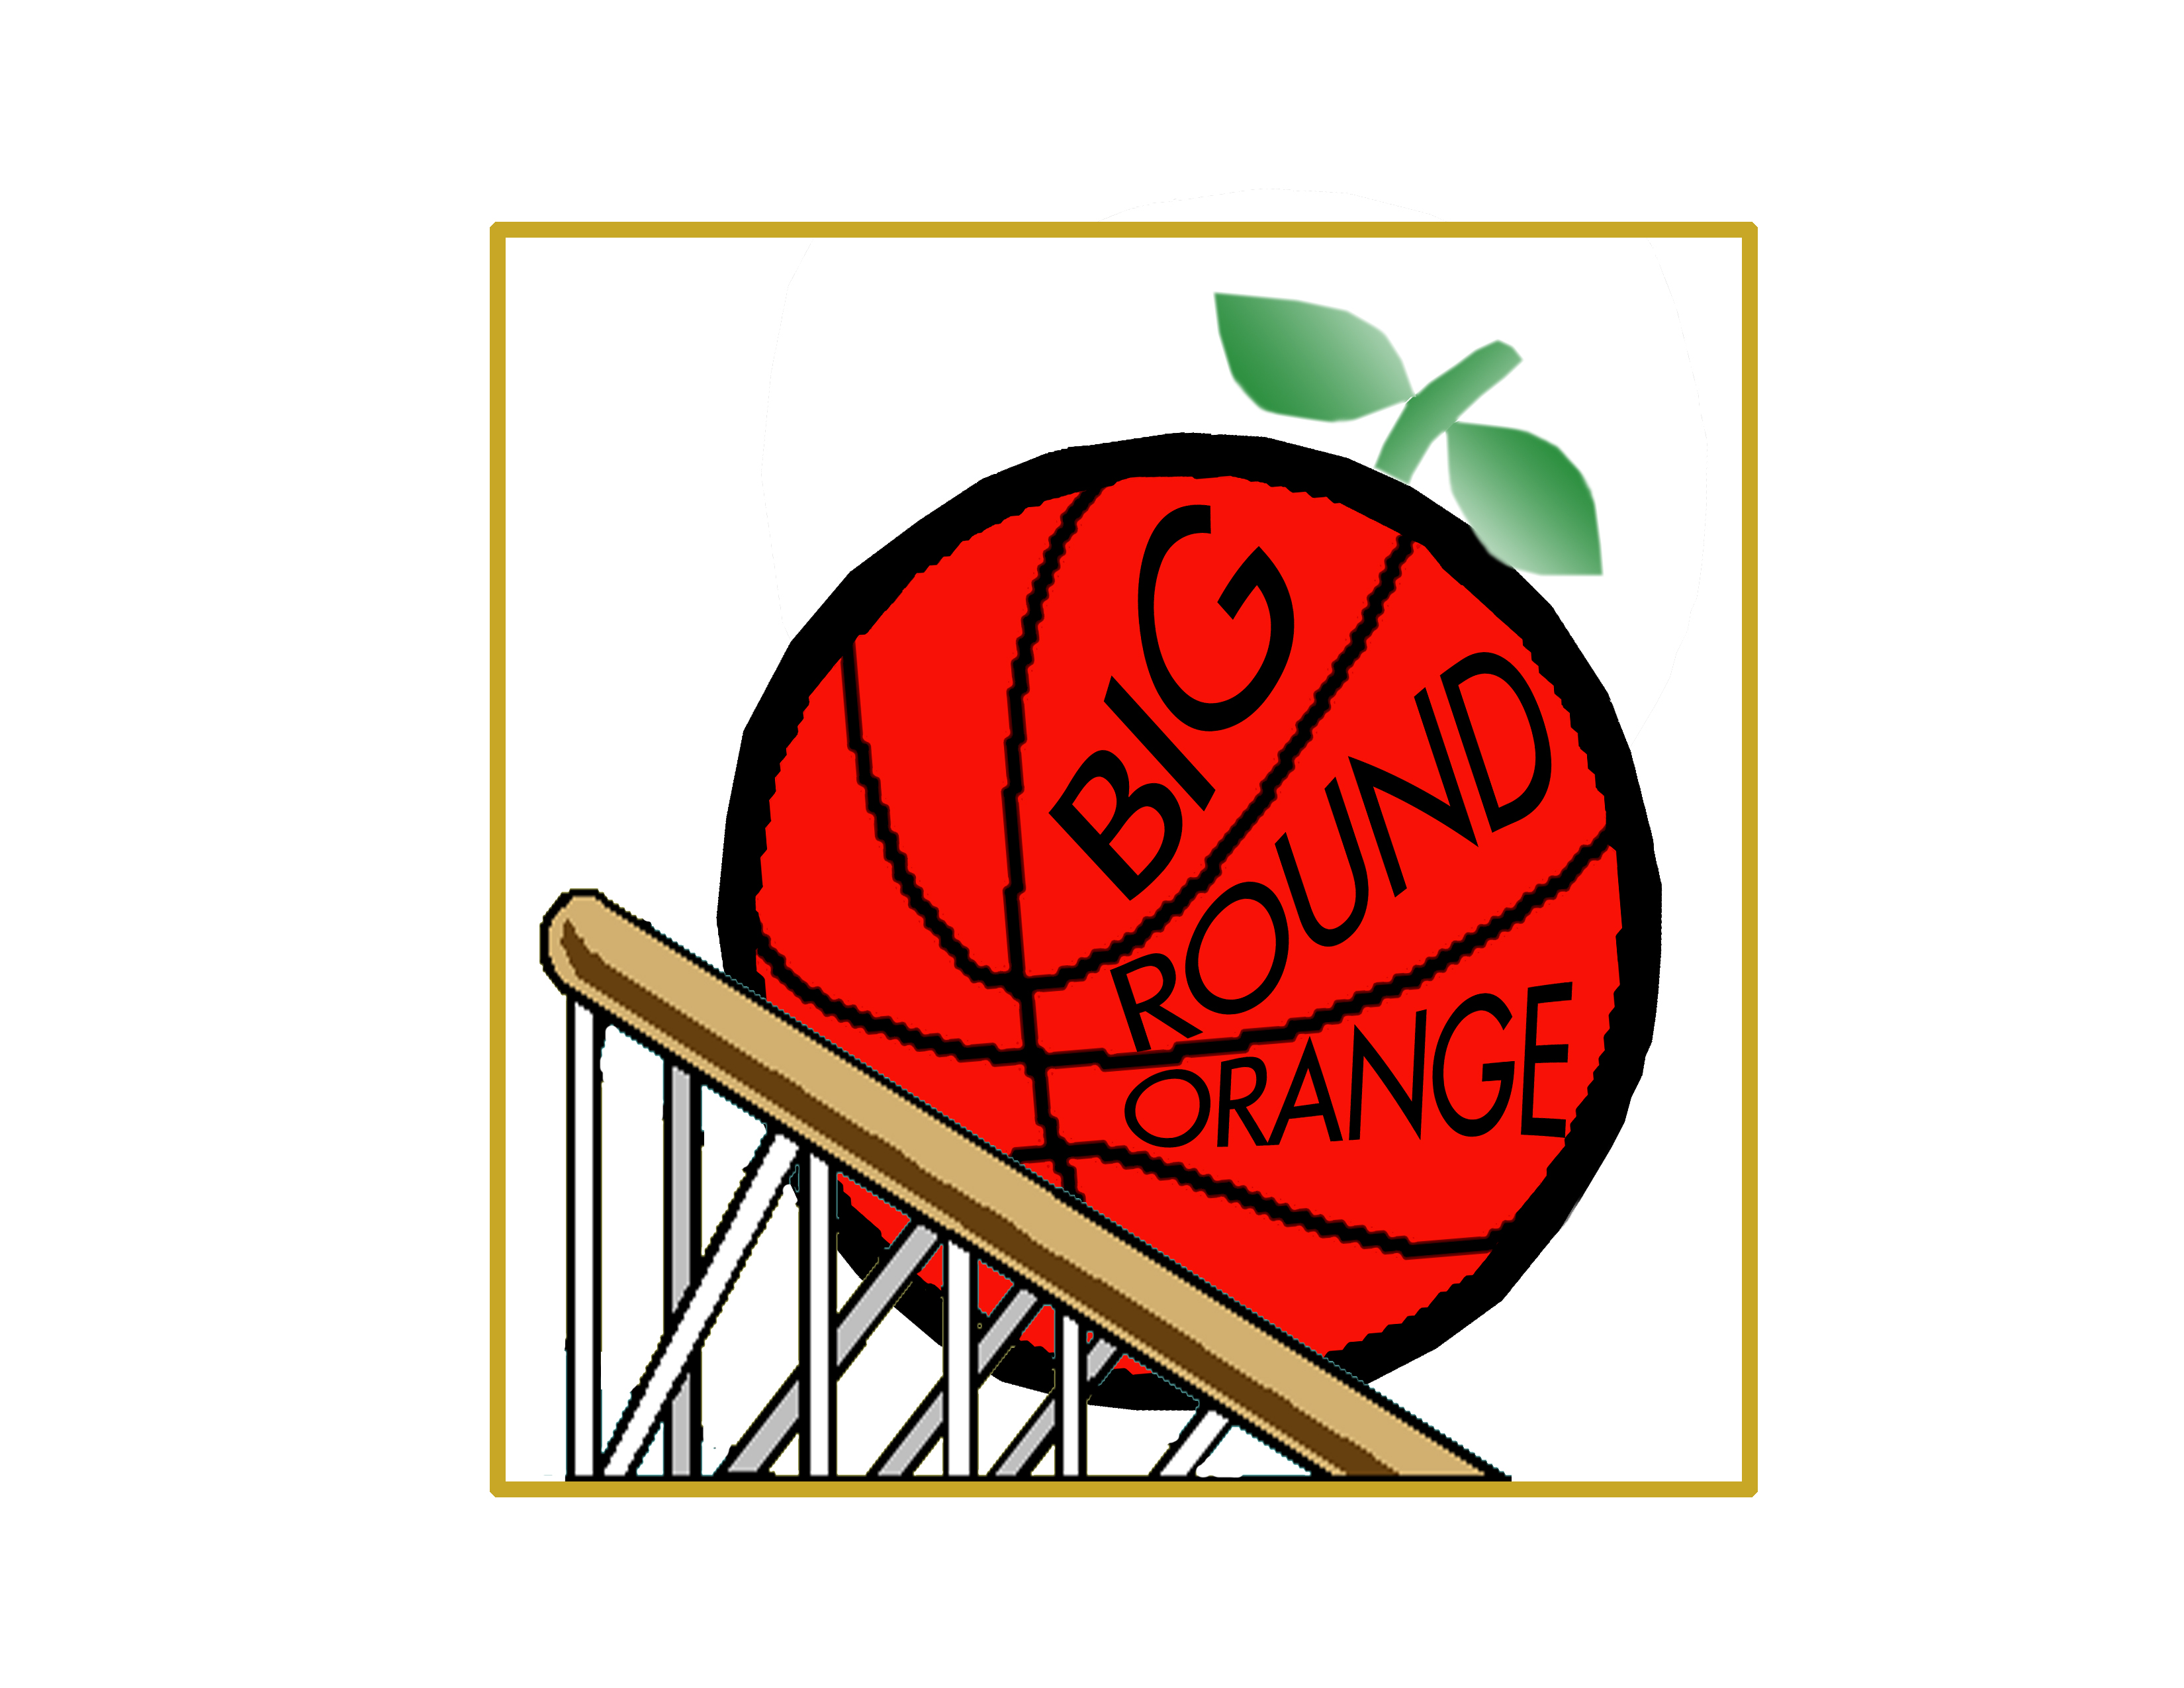 Big Round Orange and Academic Development program